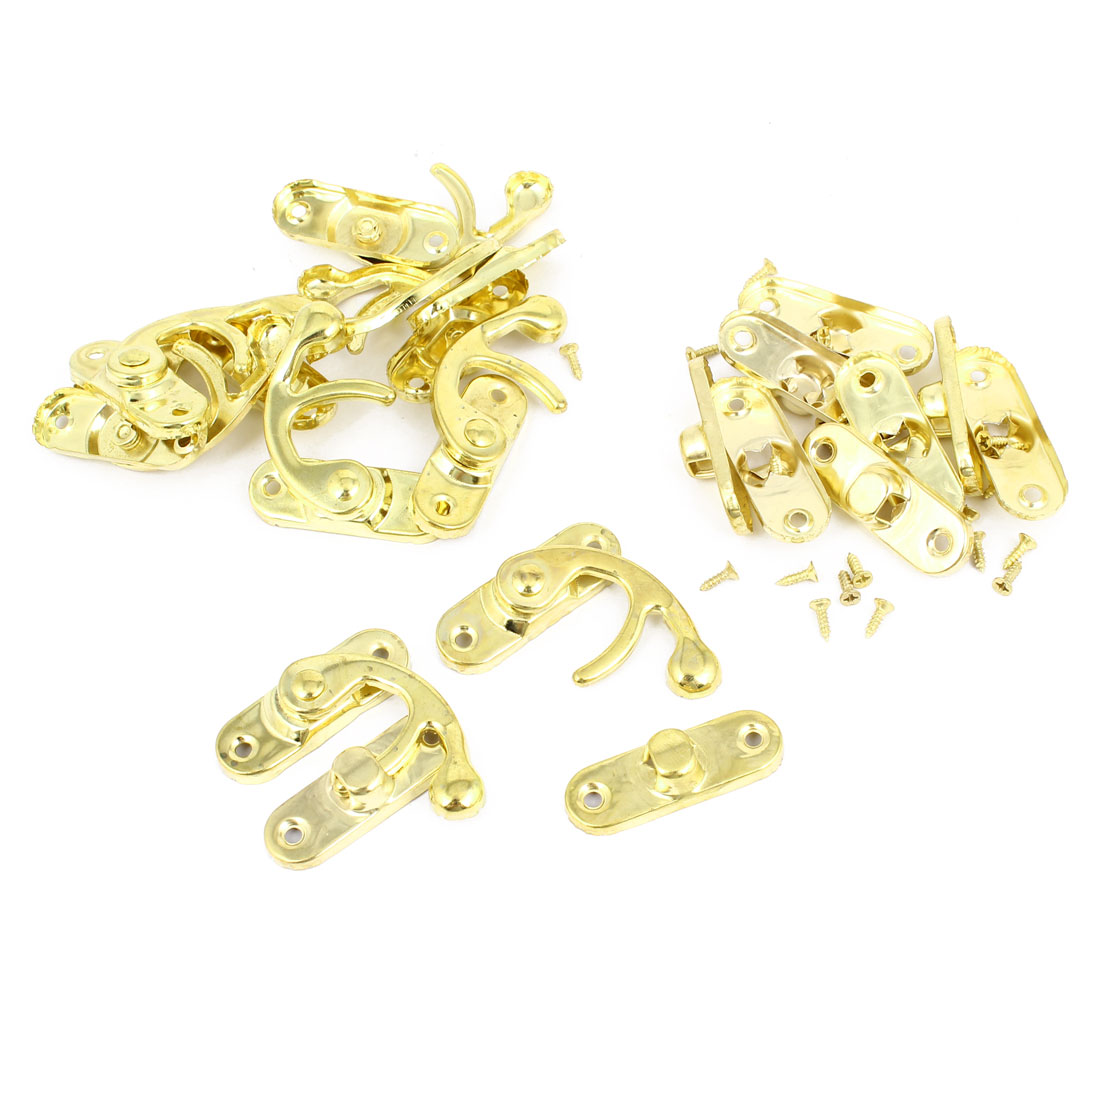 Left Latch Hook Antique Wood Box Catch Decorative Gold Tone 10 Pcs w Screws